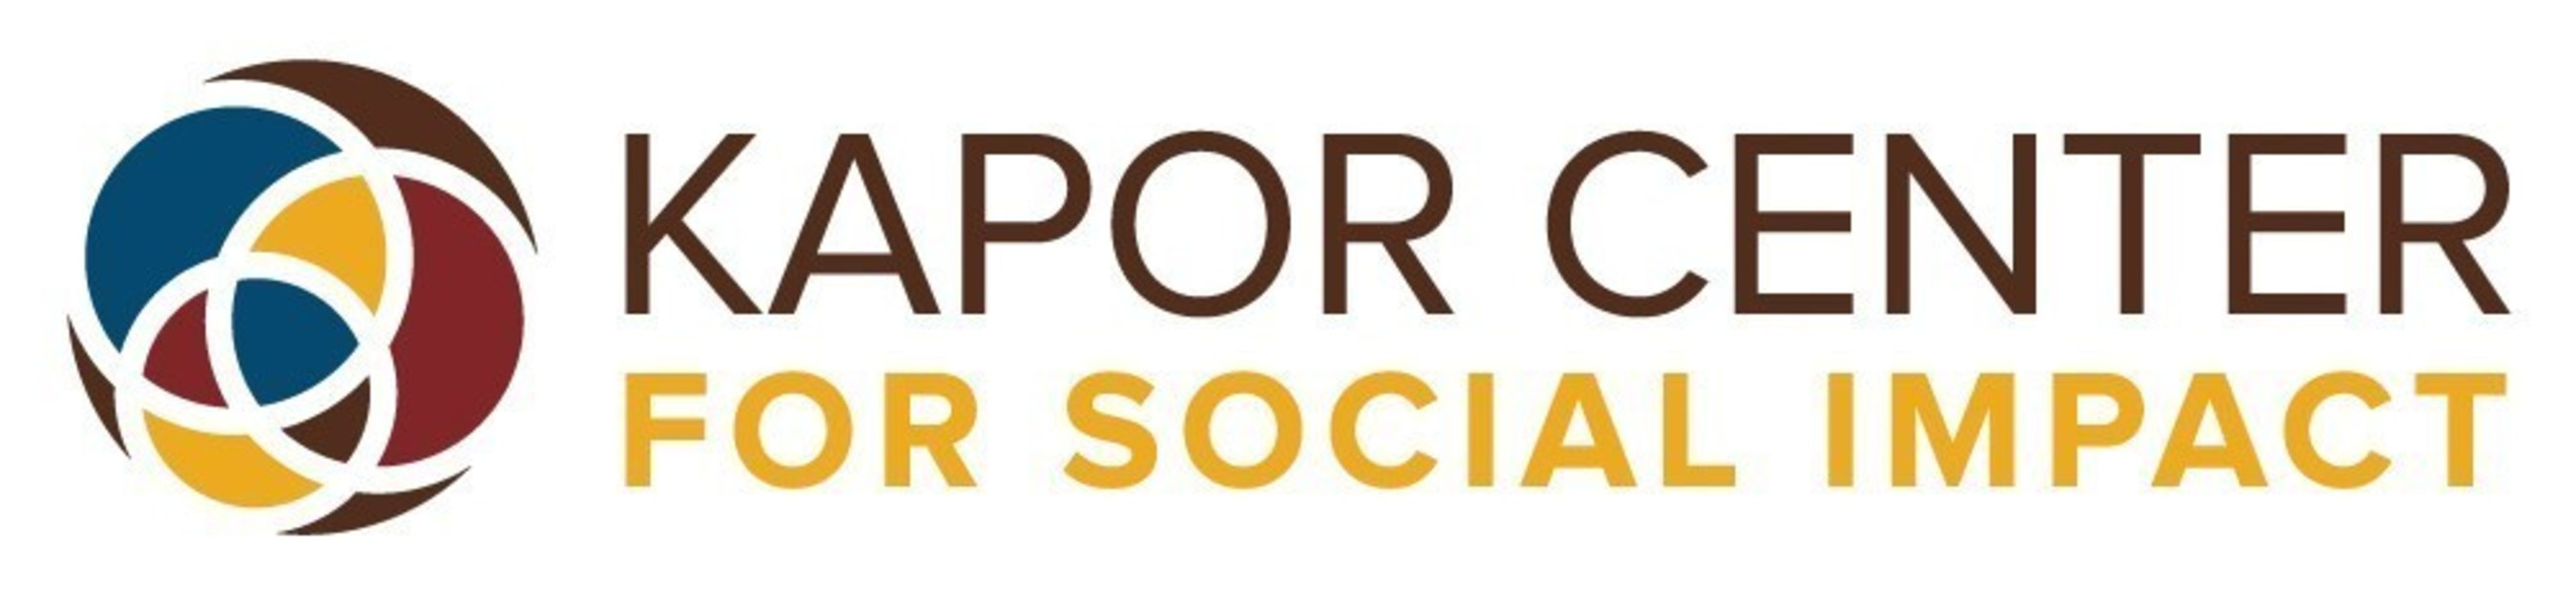 The Kapor Center for Social Impact works to make the technology ecosystem and entrepreneurship more diverse and inclusive.